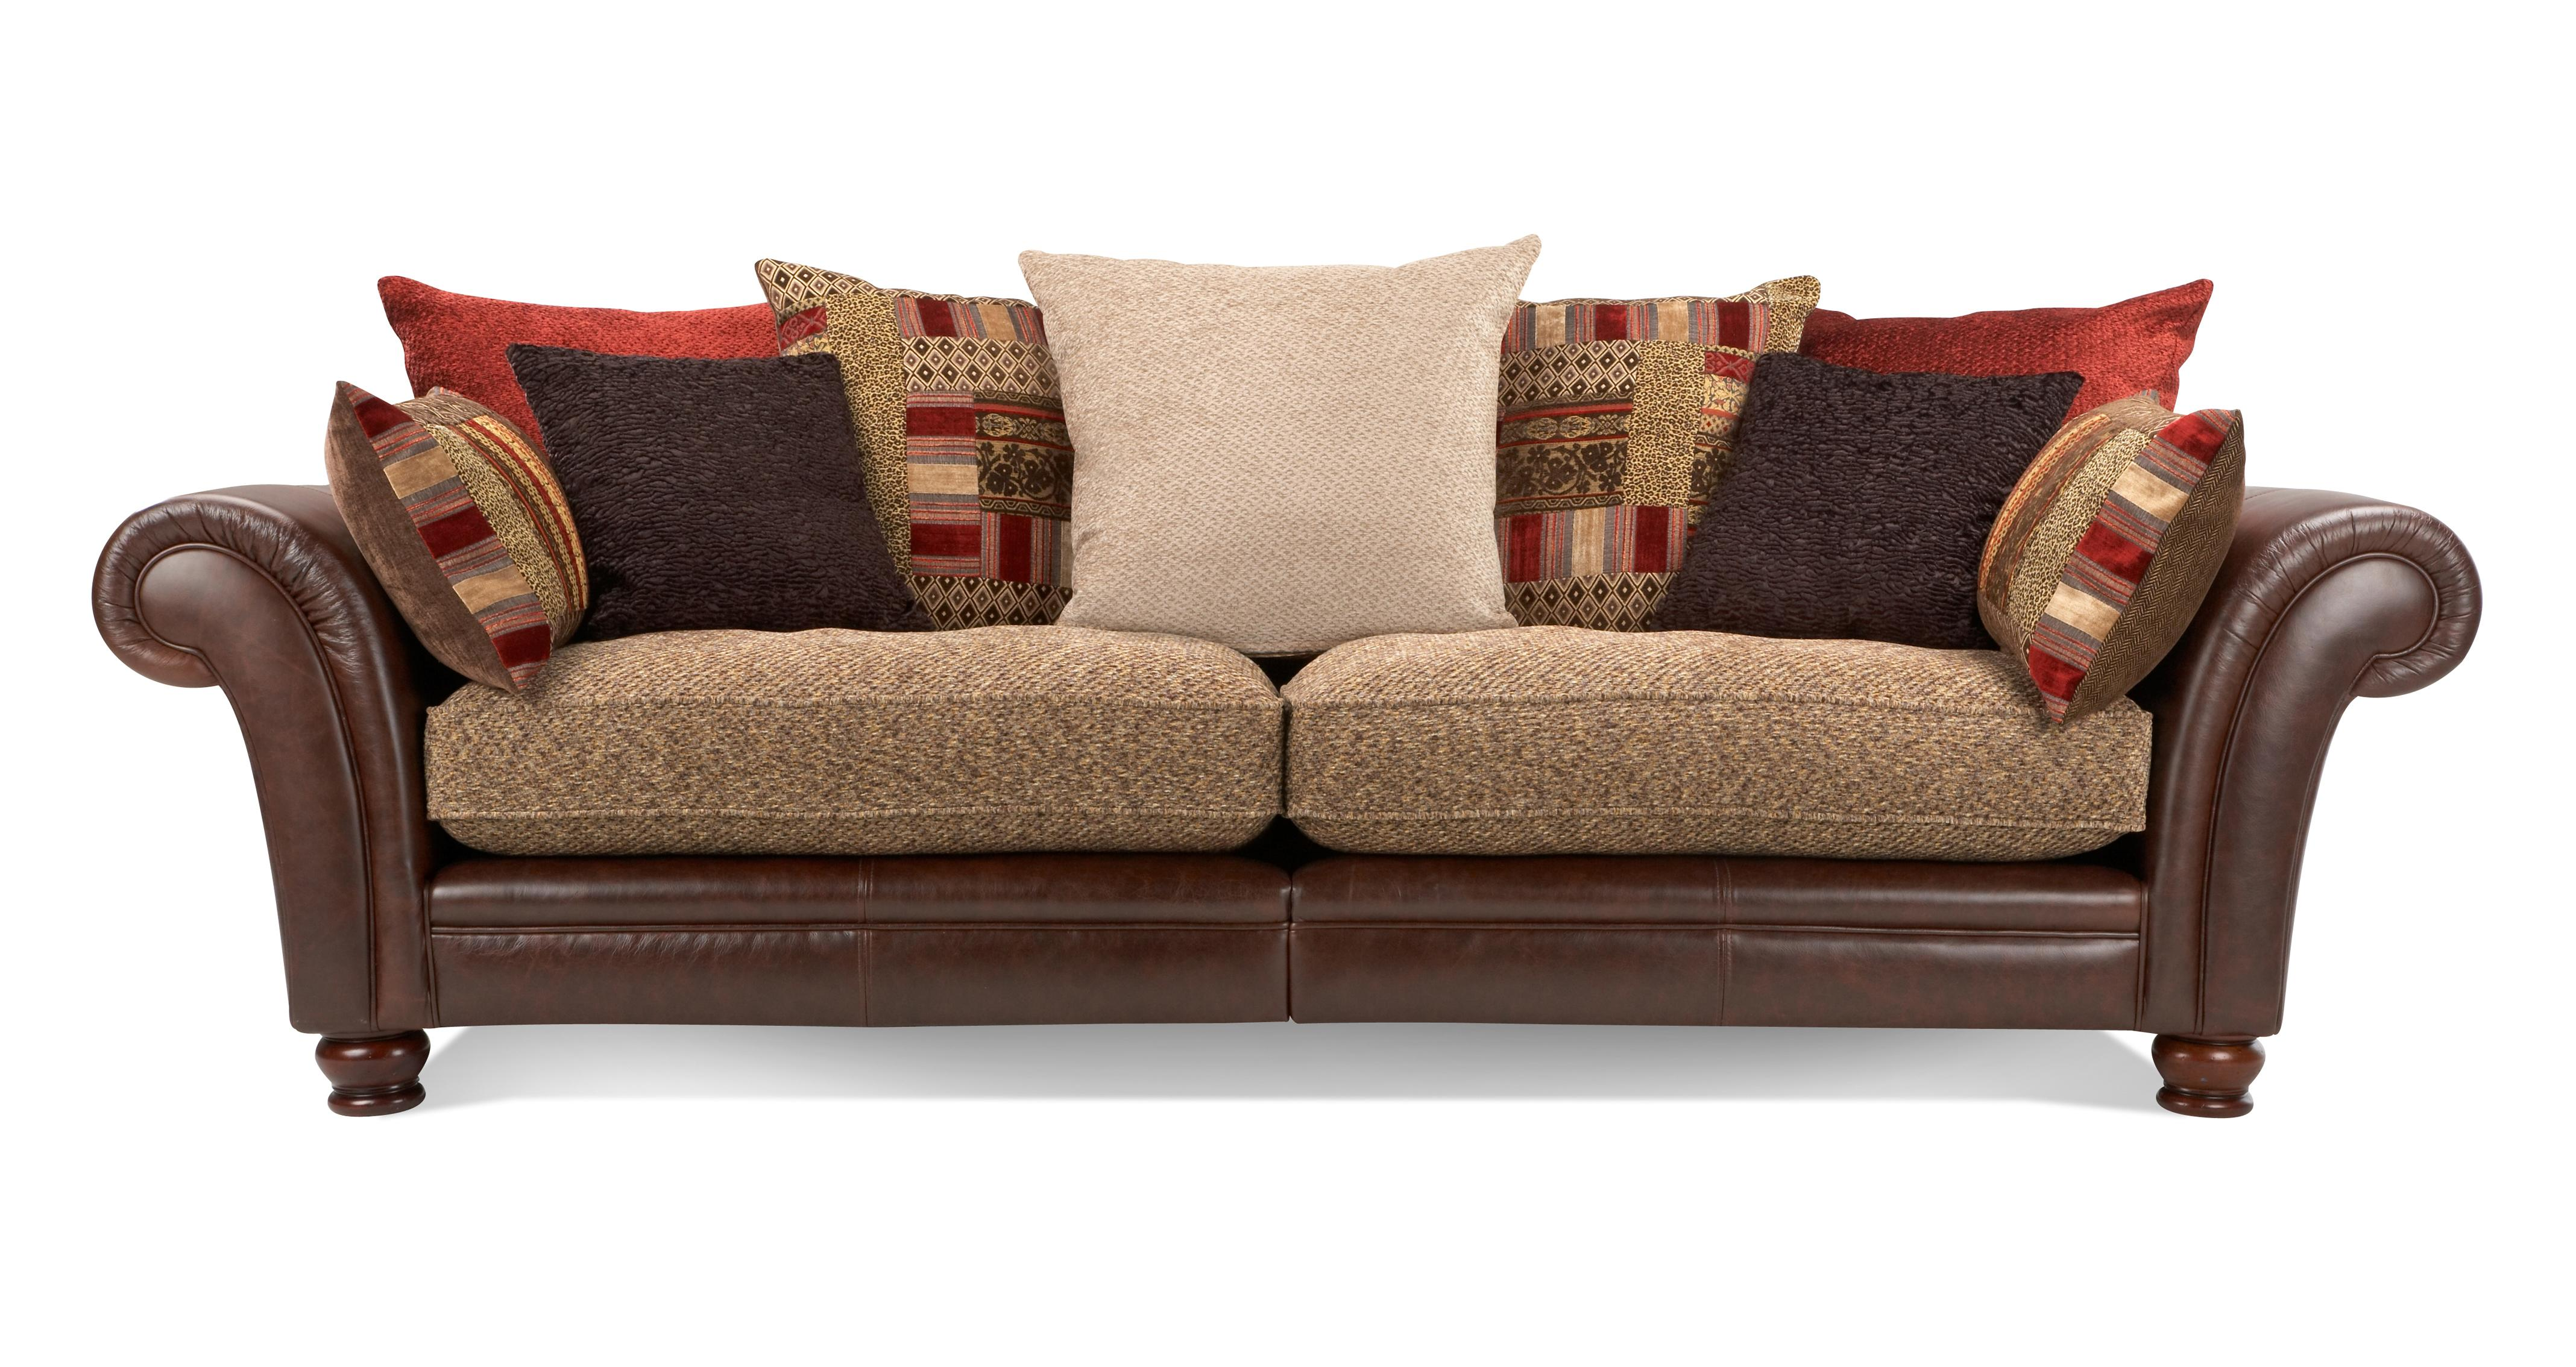 dfs coffee tables images. ideas coffee table terrific furniture